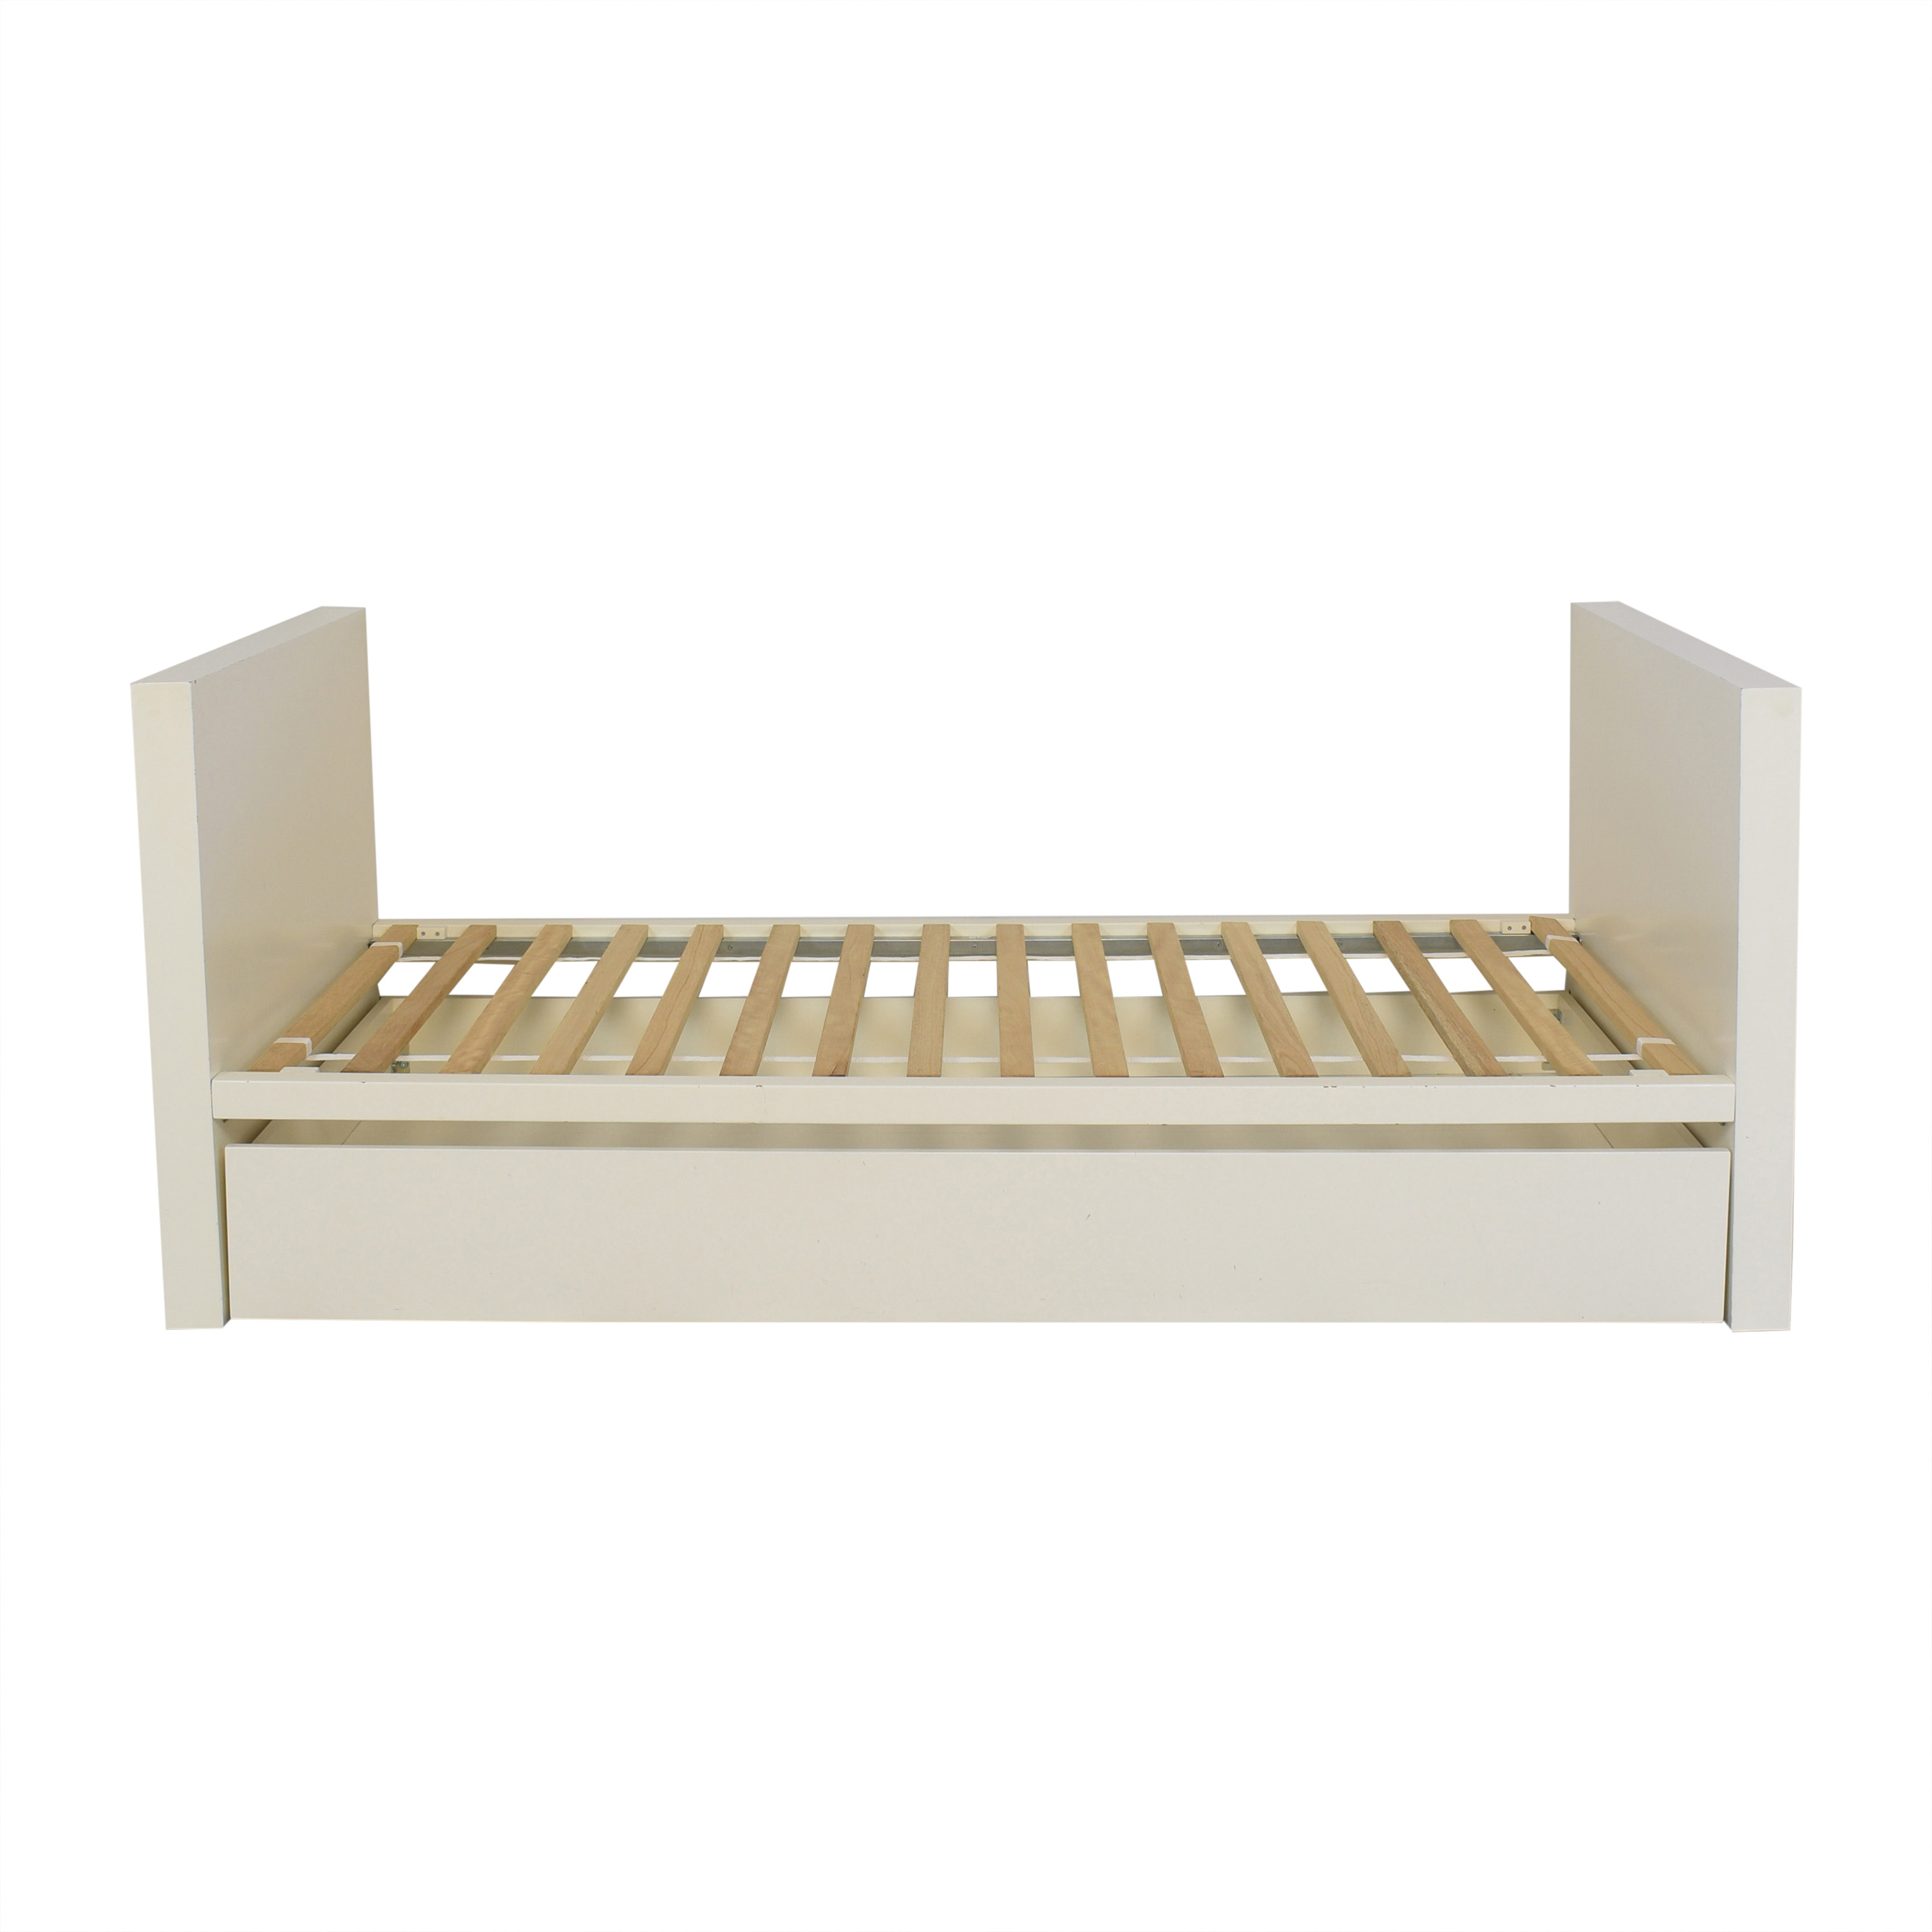 West Elm West Elm Parsons White Day Bed with Trundle white